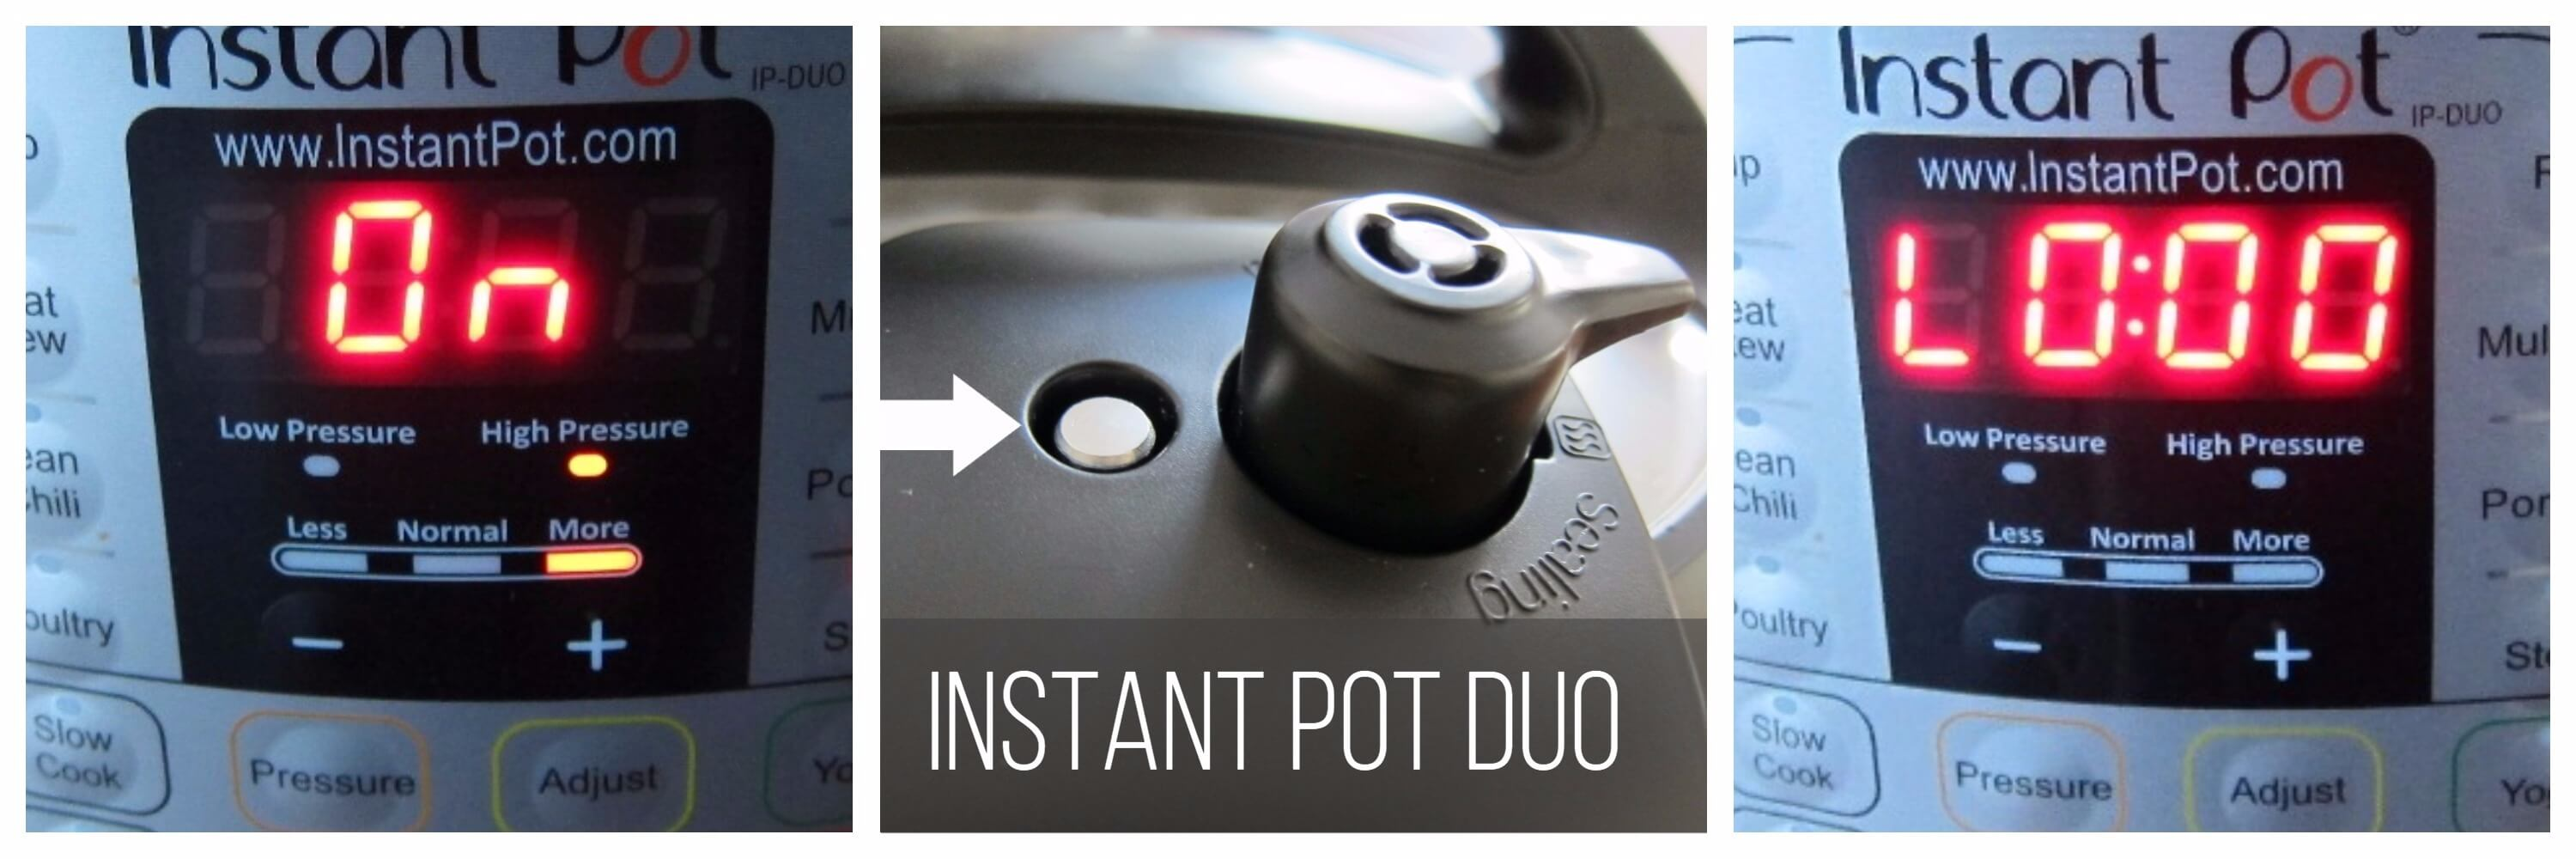 Instant Pot Duo Pressure Cooking collage - display shows On, float valve is down, display shows L0:00 - Paint the Kitchen Red